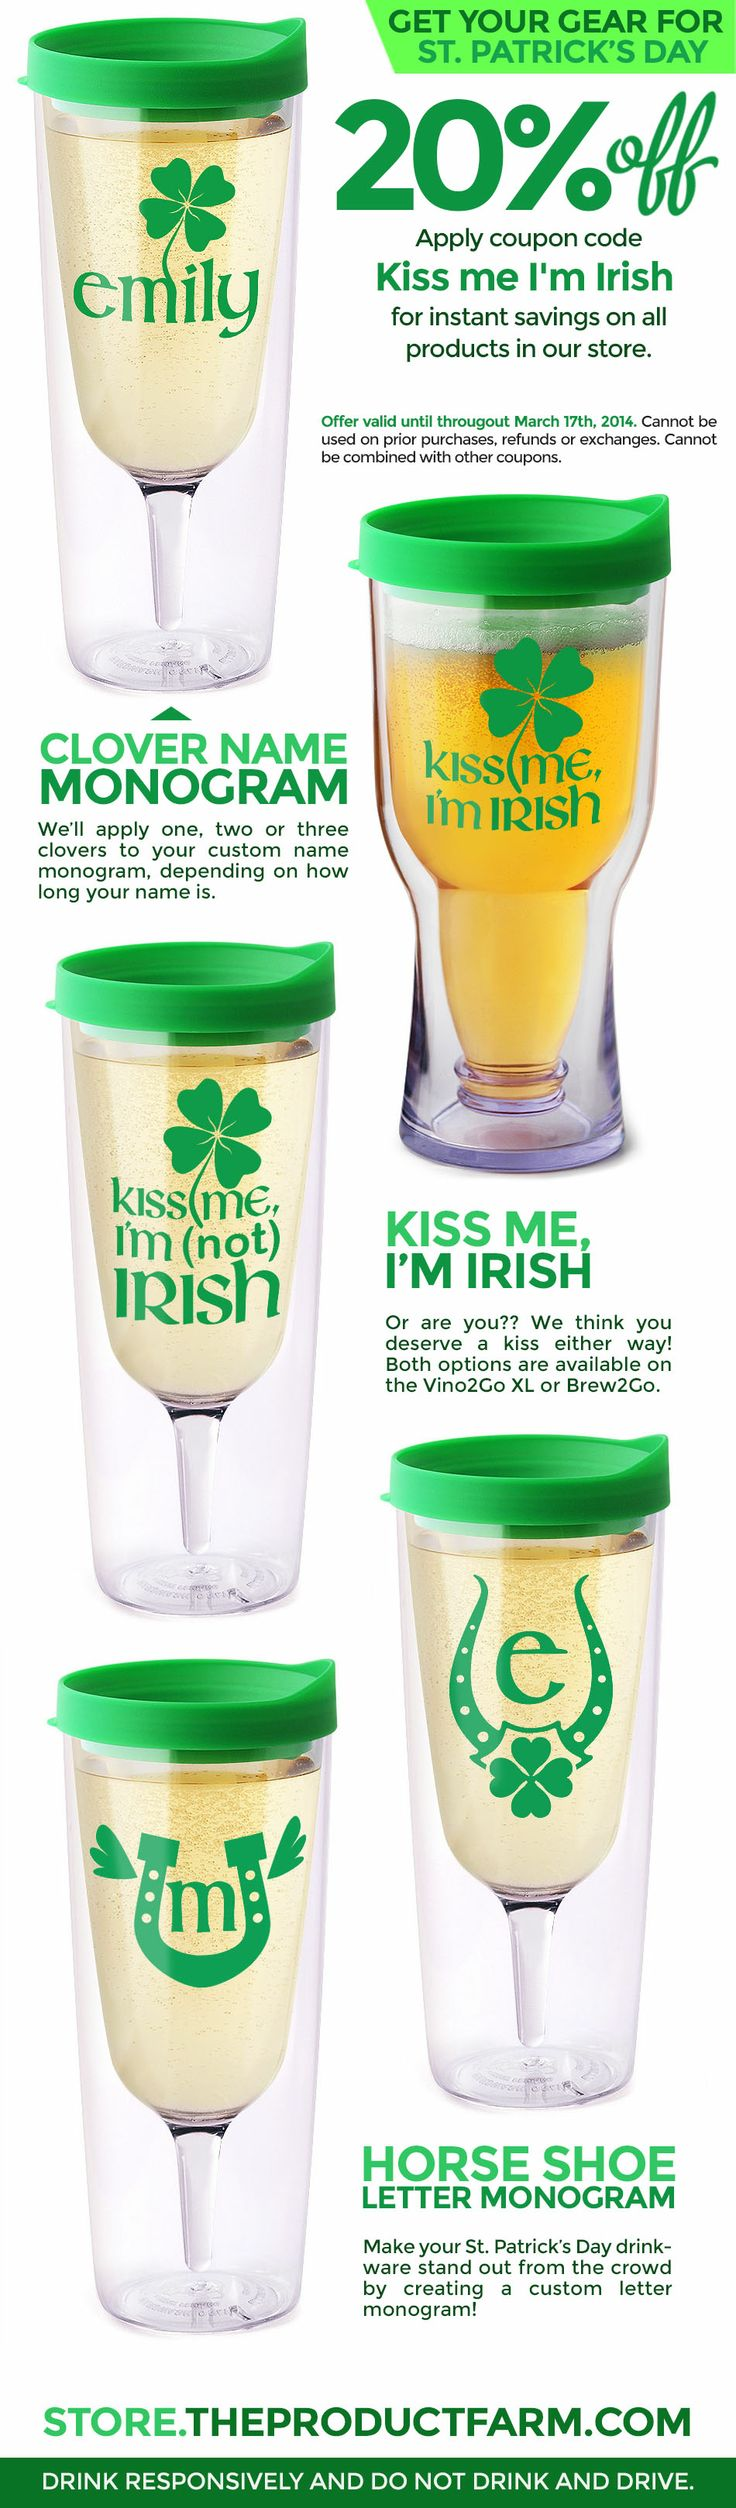 Product coupons ireland